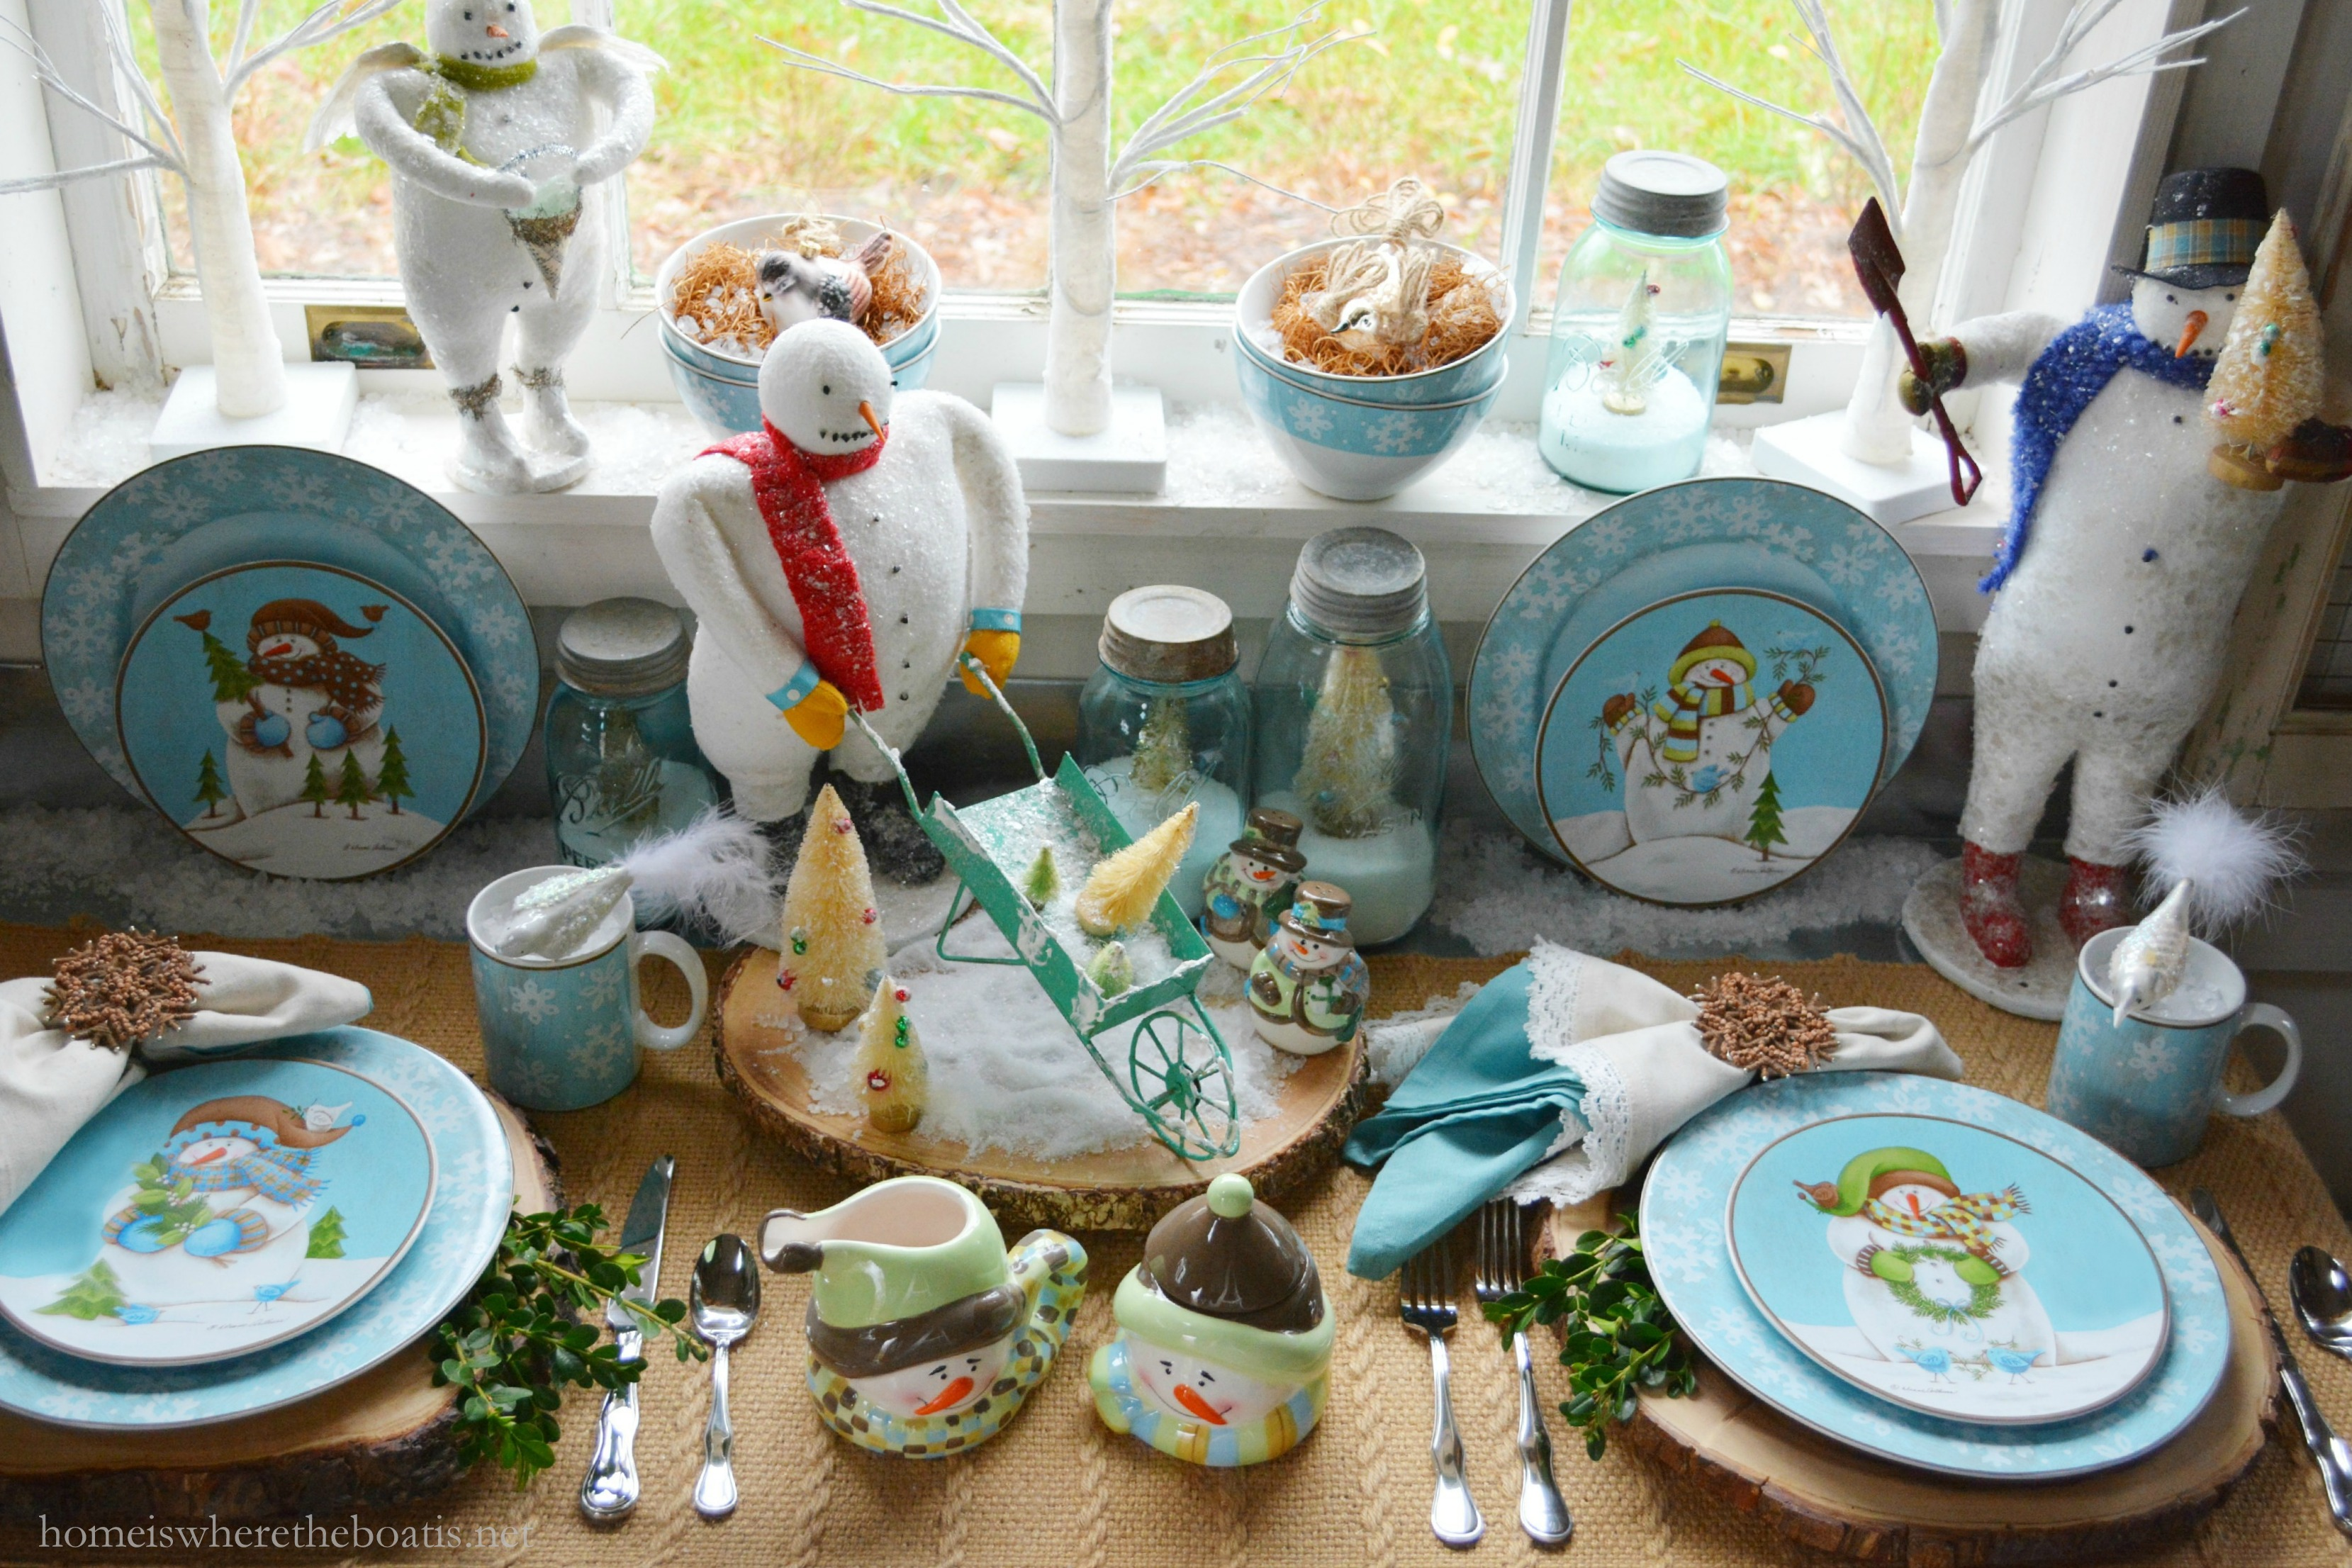 Four assorted plump and jolly snowmen decorate the salad plates in shades of blue and green with brown accents to pair with blue and white snowflakes of ... & In the Potting Shed: Dining with Snowmen and Evergreen Ernie ...